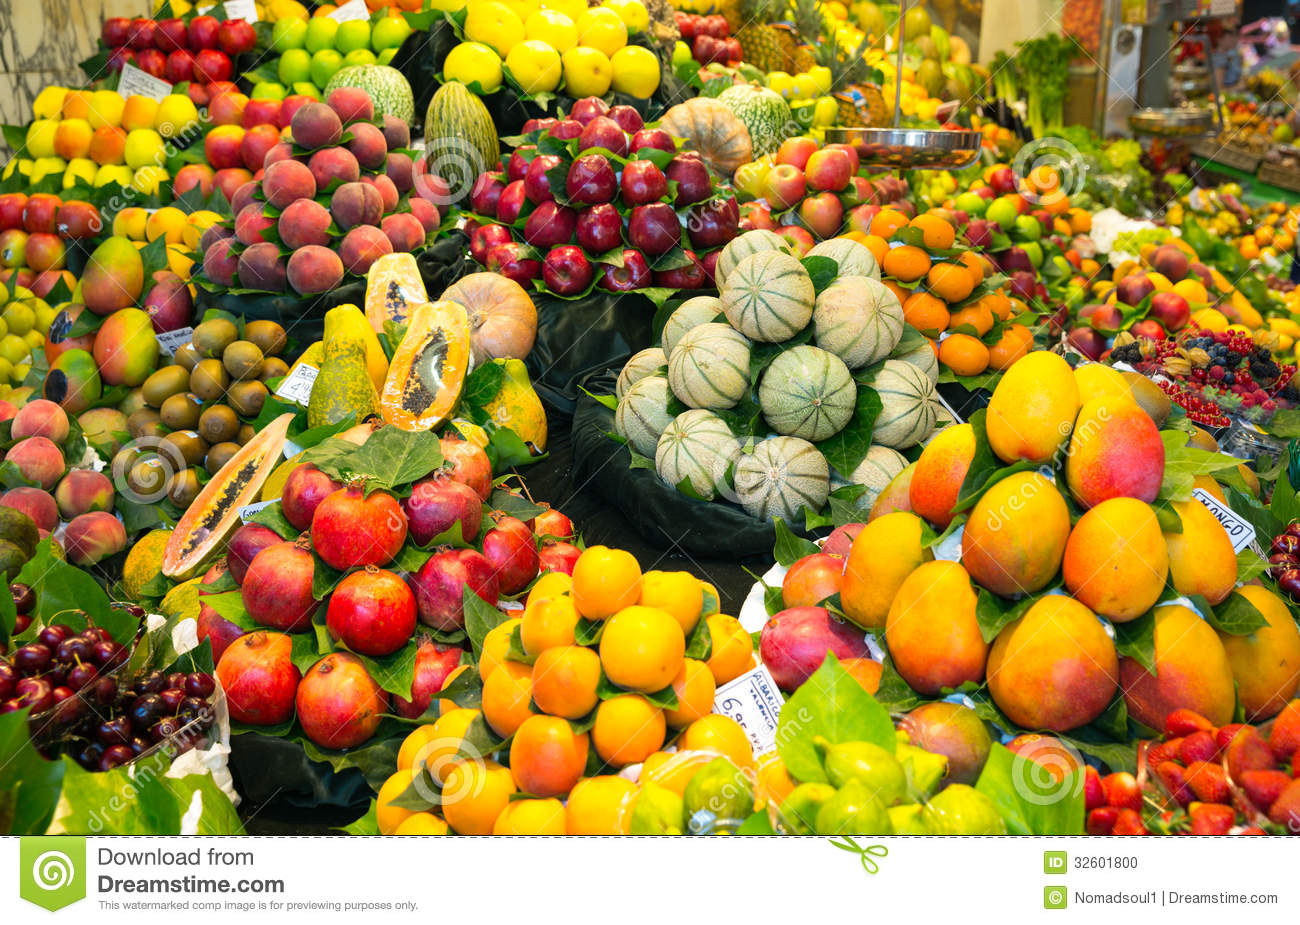 Stock Photo Abundance Fruits Local Market Image32601800 on thumbs up clip art